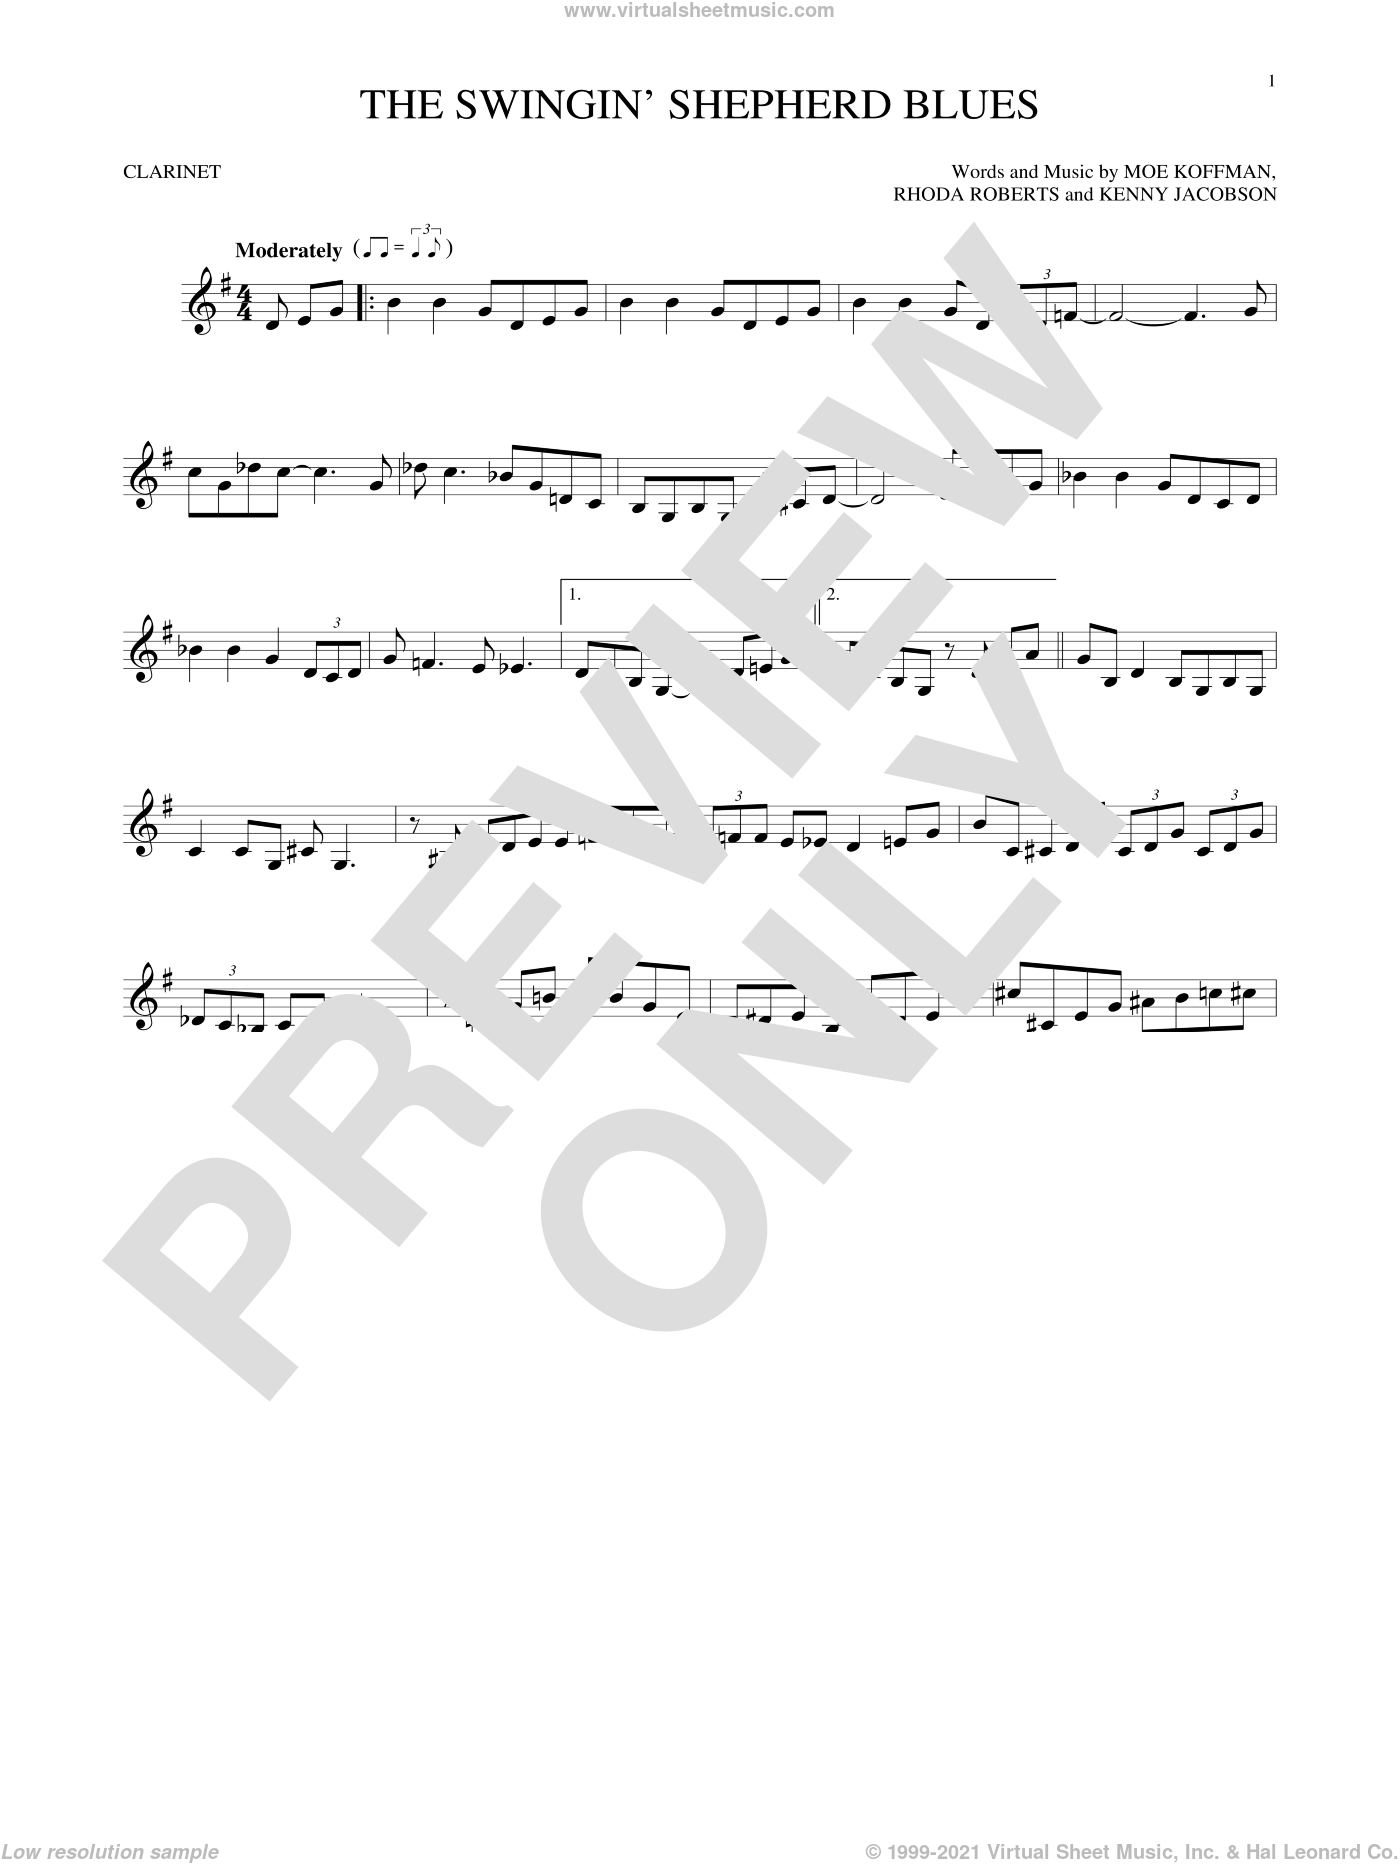 The Swingin' Shepherd Blues sheet music for clarinet solo by Moe Koffman, Kenny Jacobson and Rhoda Roberts, intermediate skill level